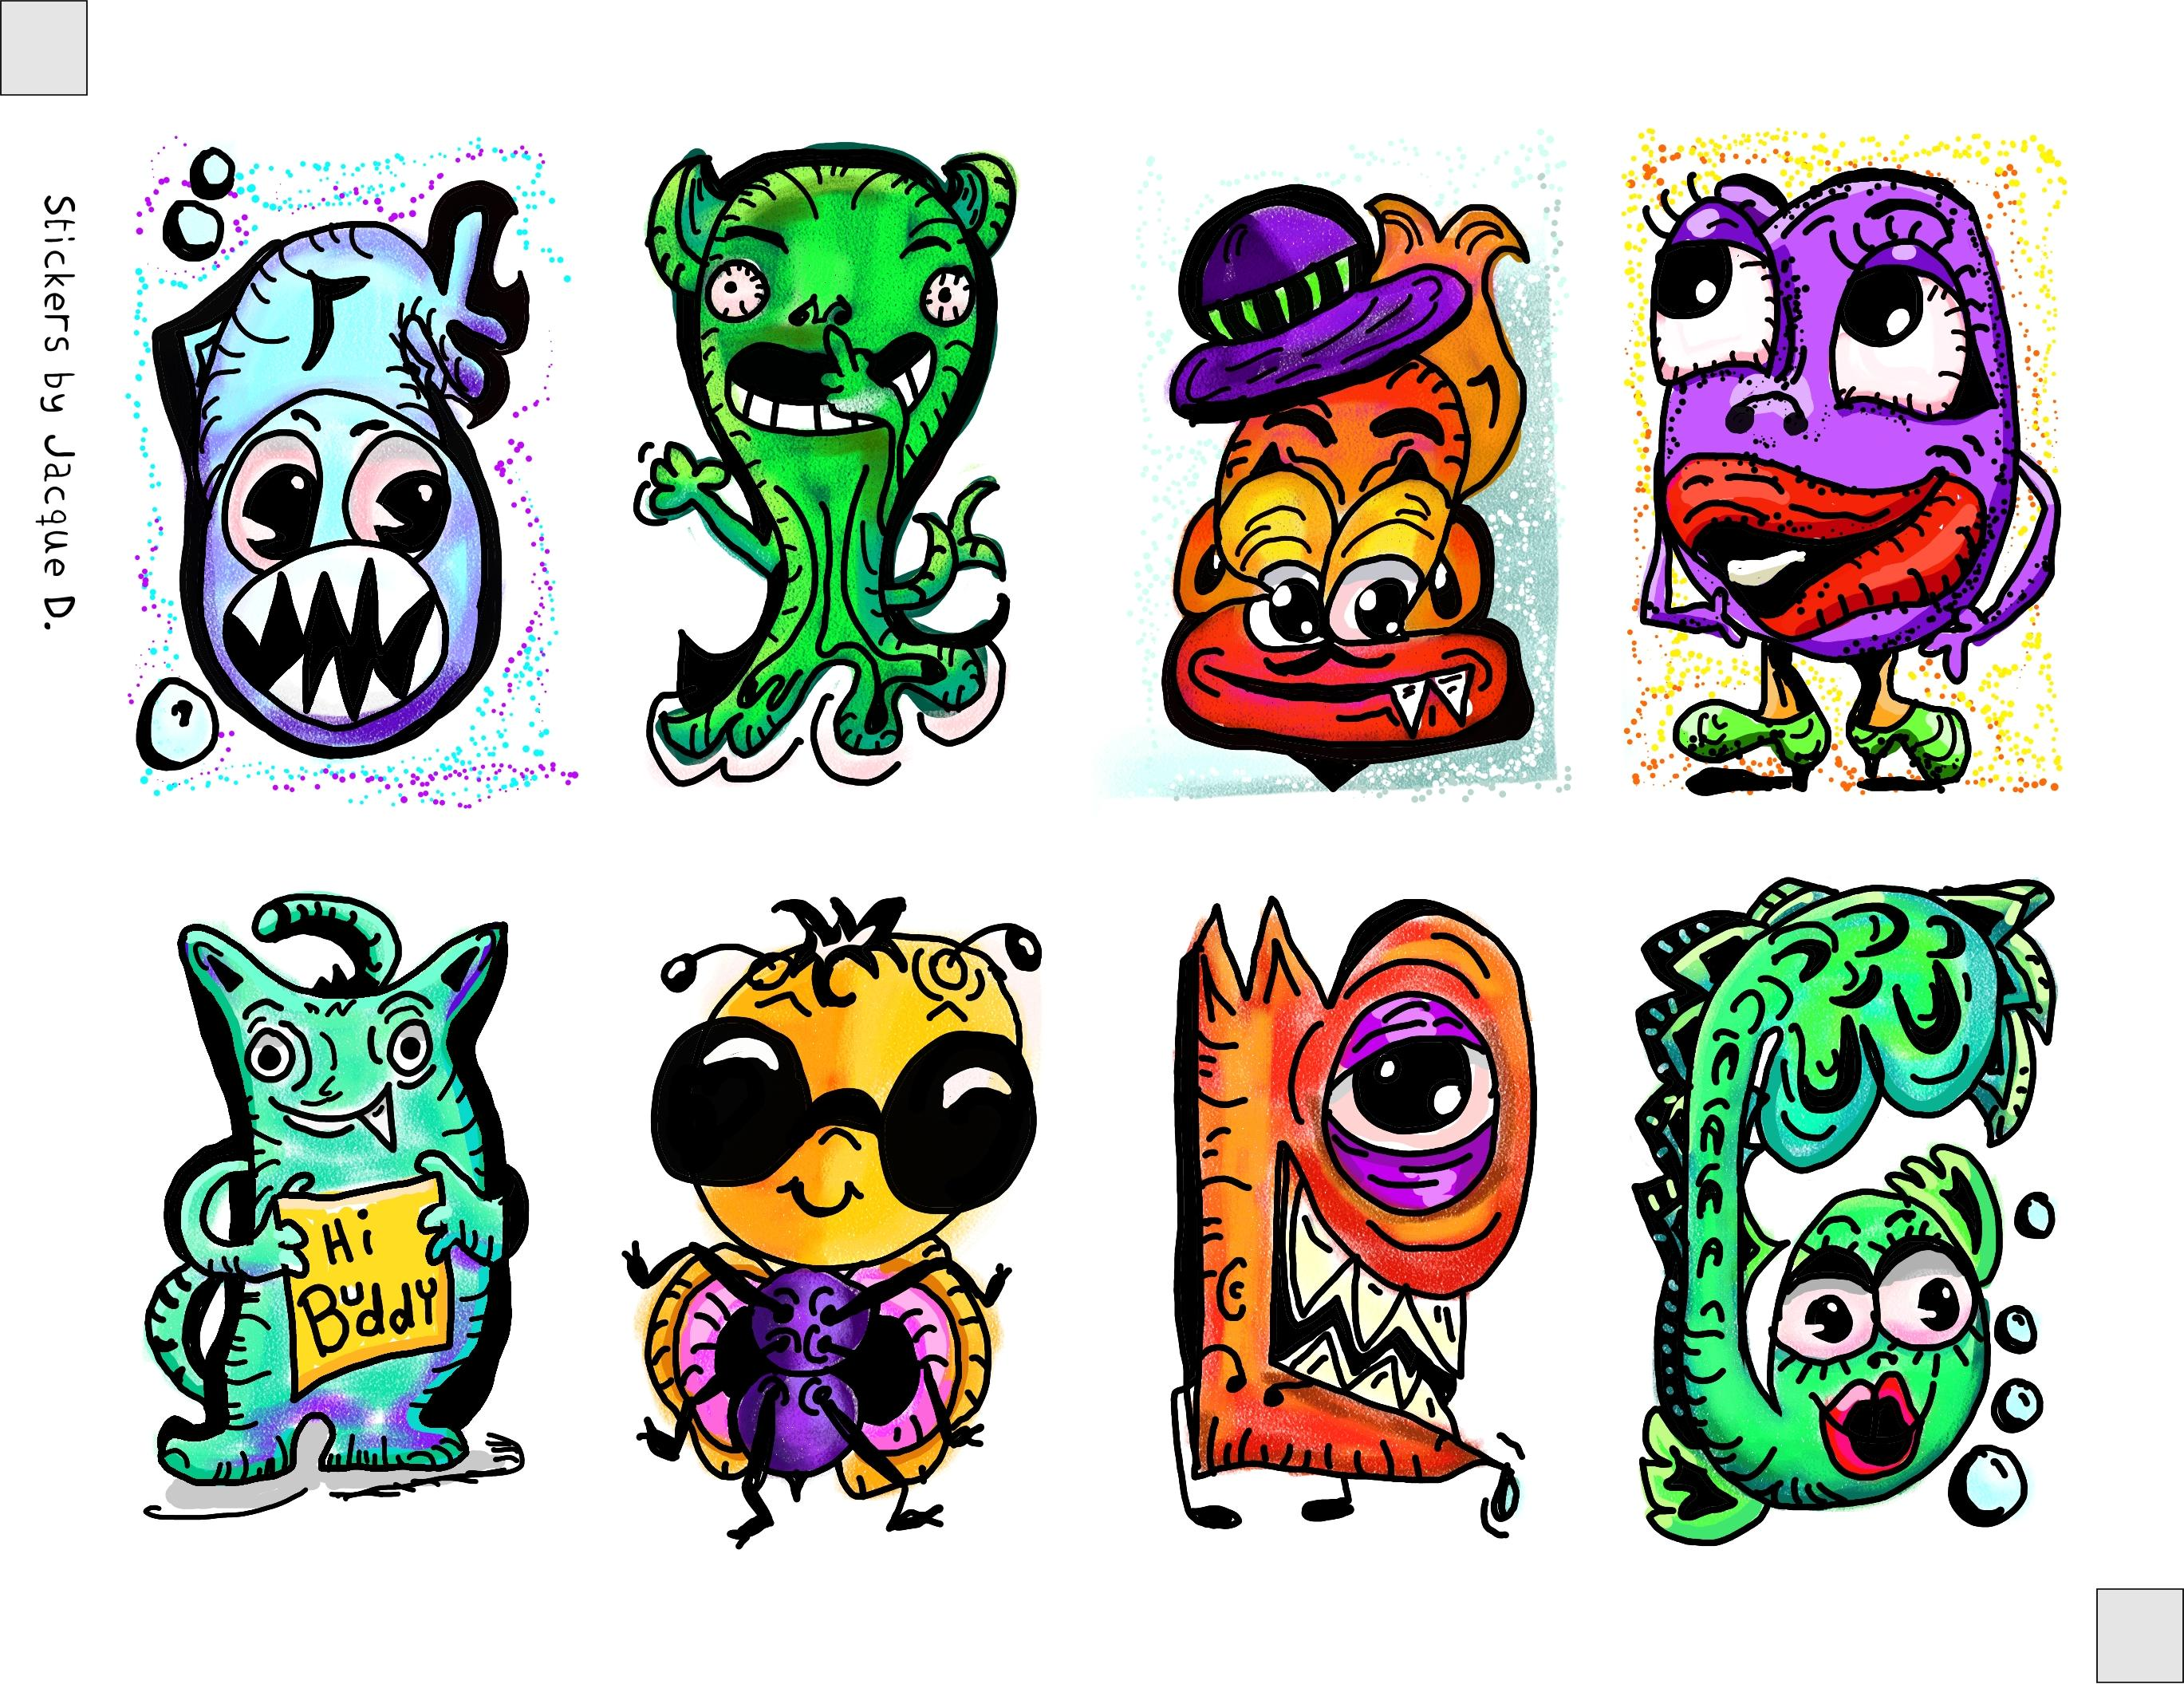 Graffiti characters clipart png free stock Free Graffiti Characters, Download Free Clip Art, Free Clip Art on ... png free stock